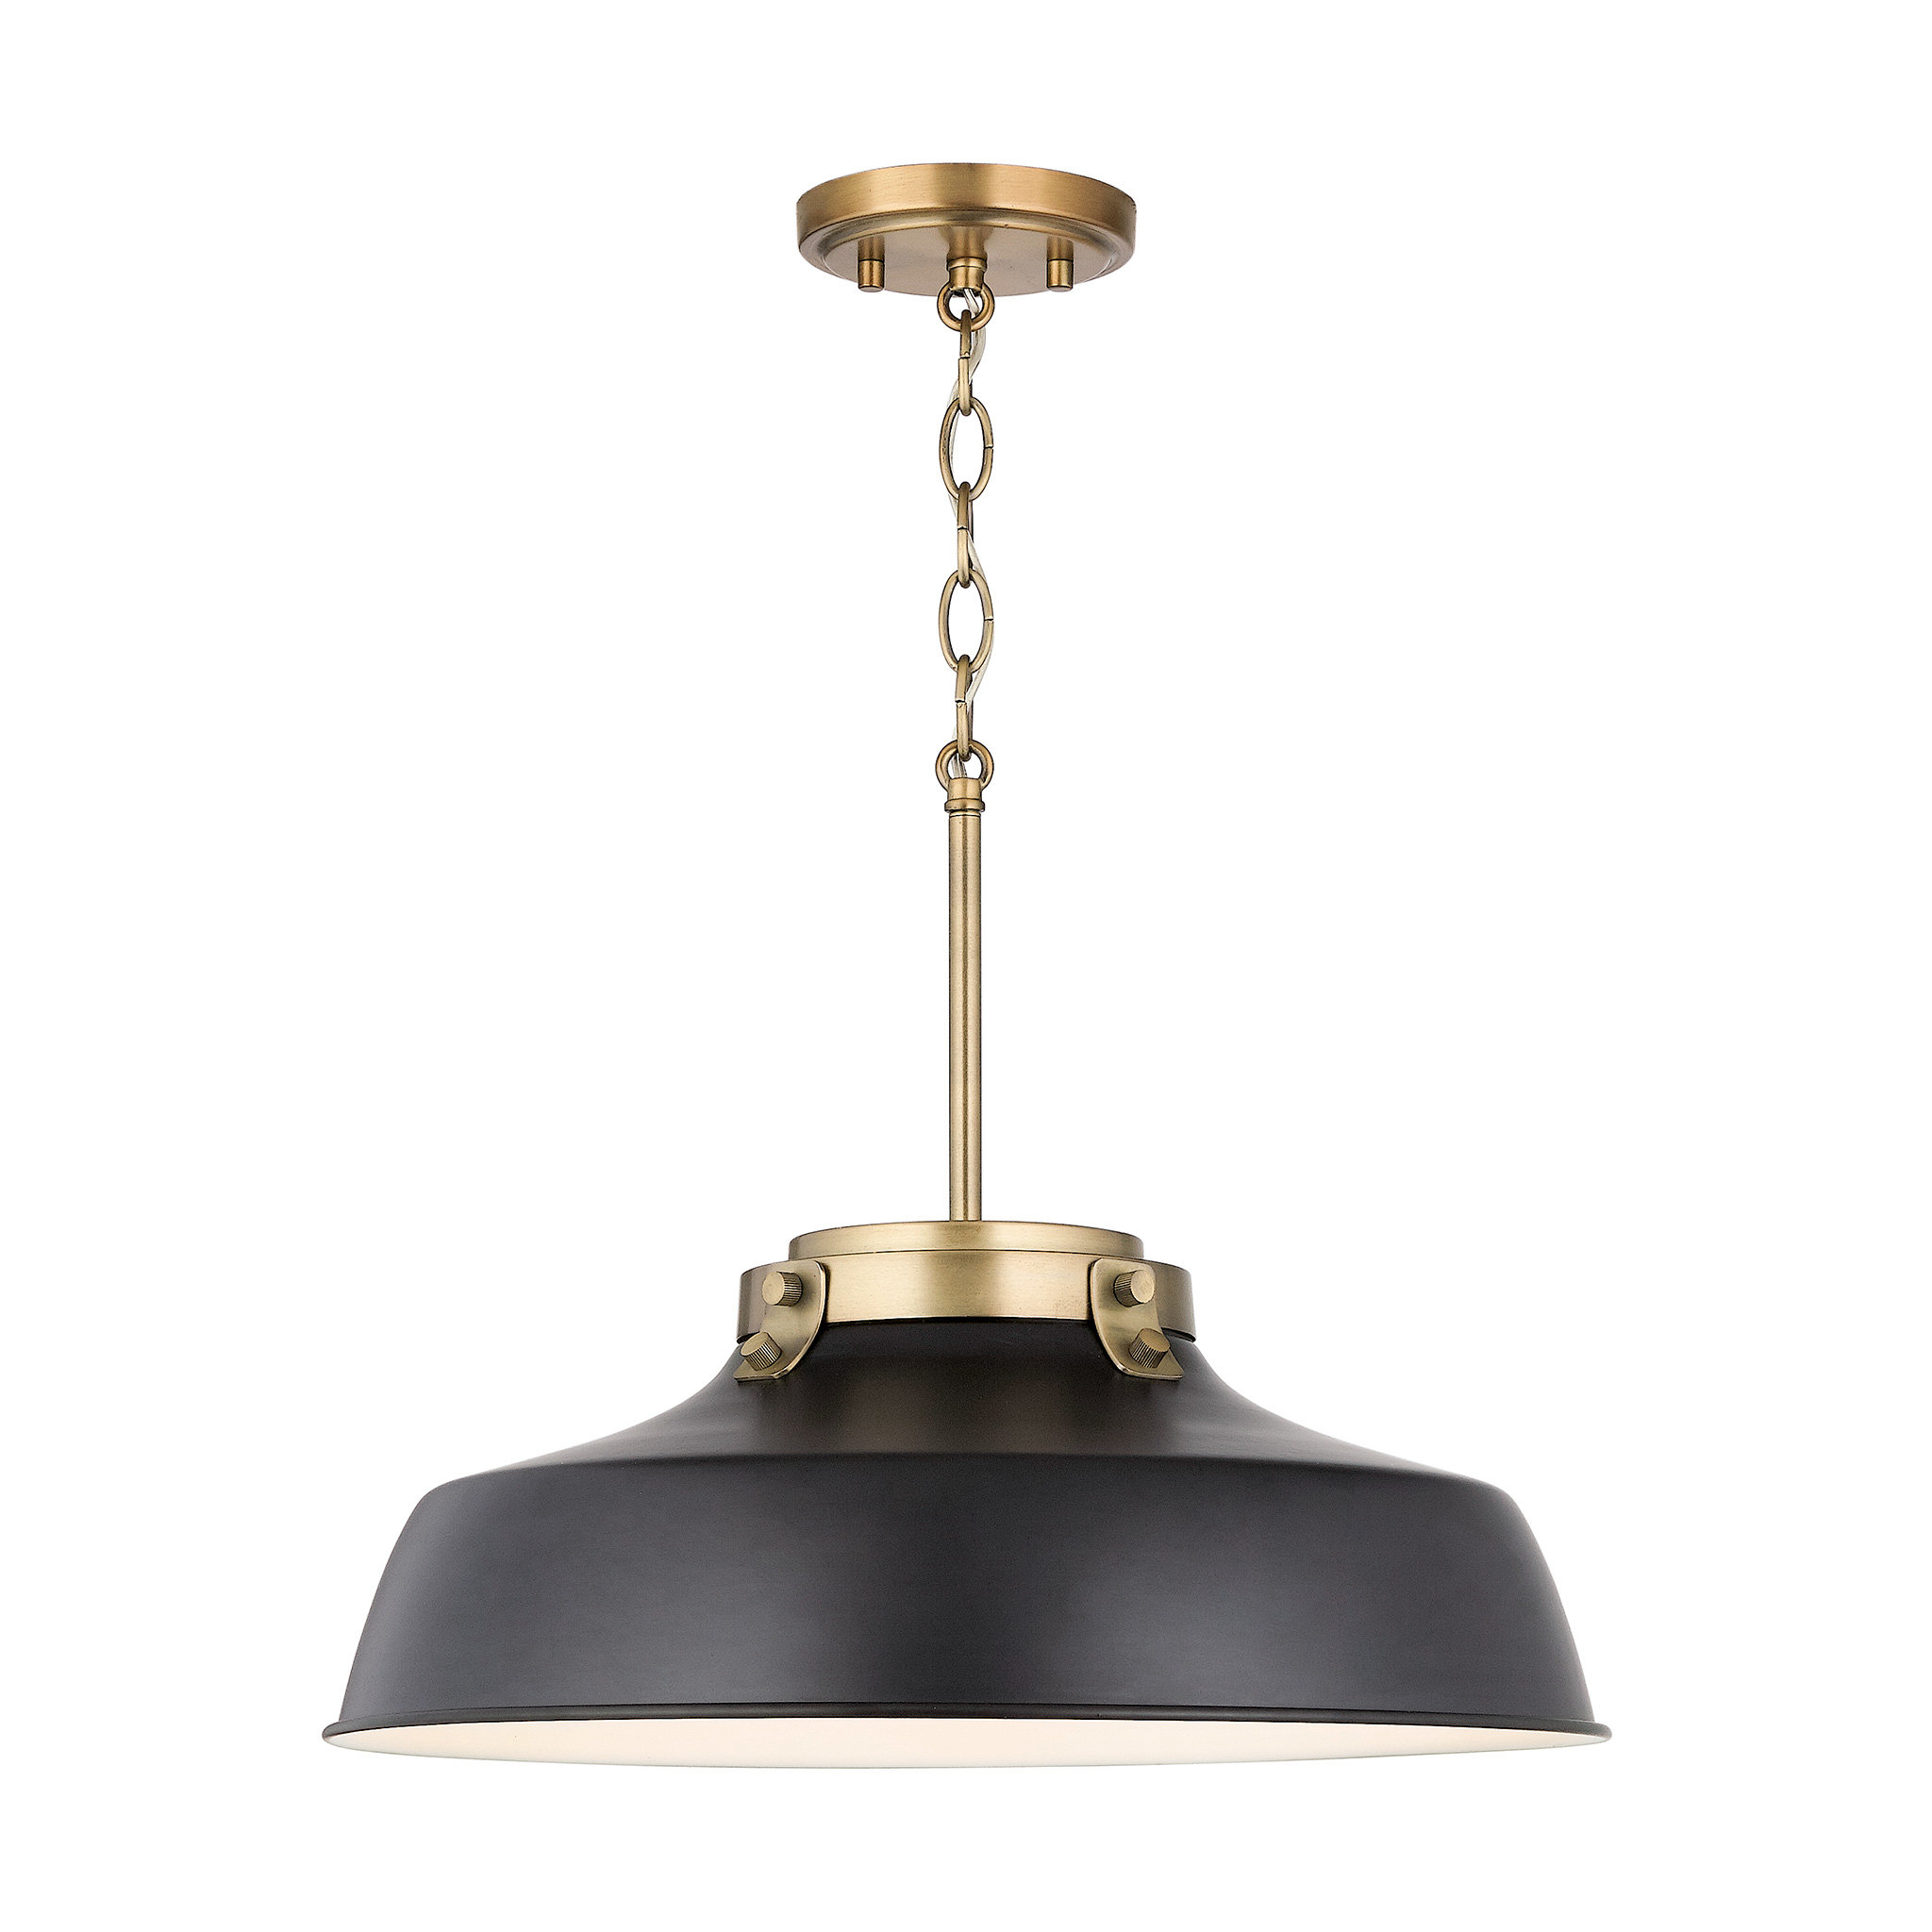 1 Light Dome Pendant In Most Popular Ryker 1 Light Single Dome Pendants (View 13 of 20)